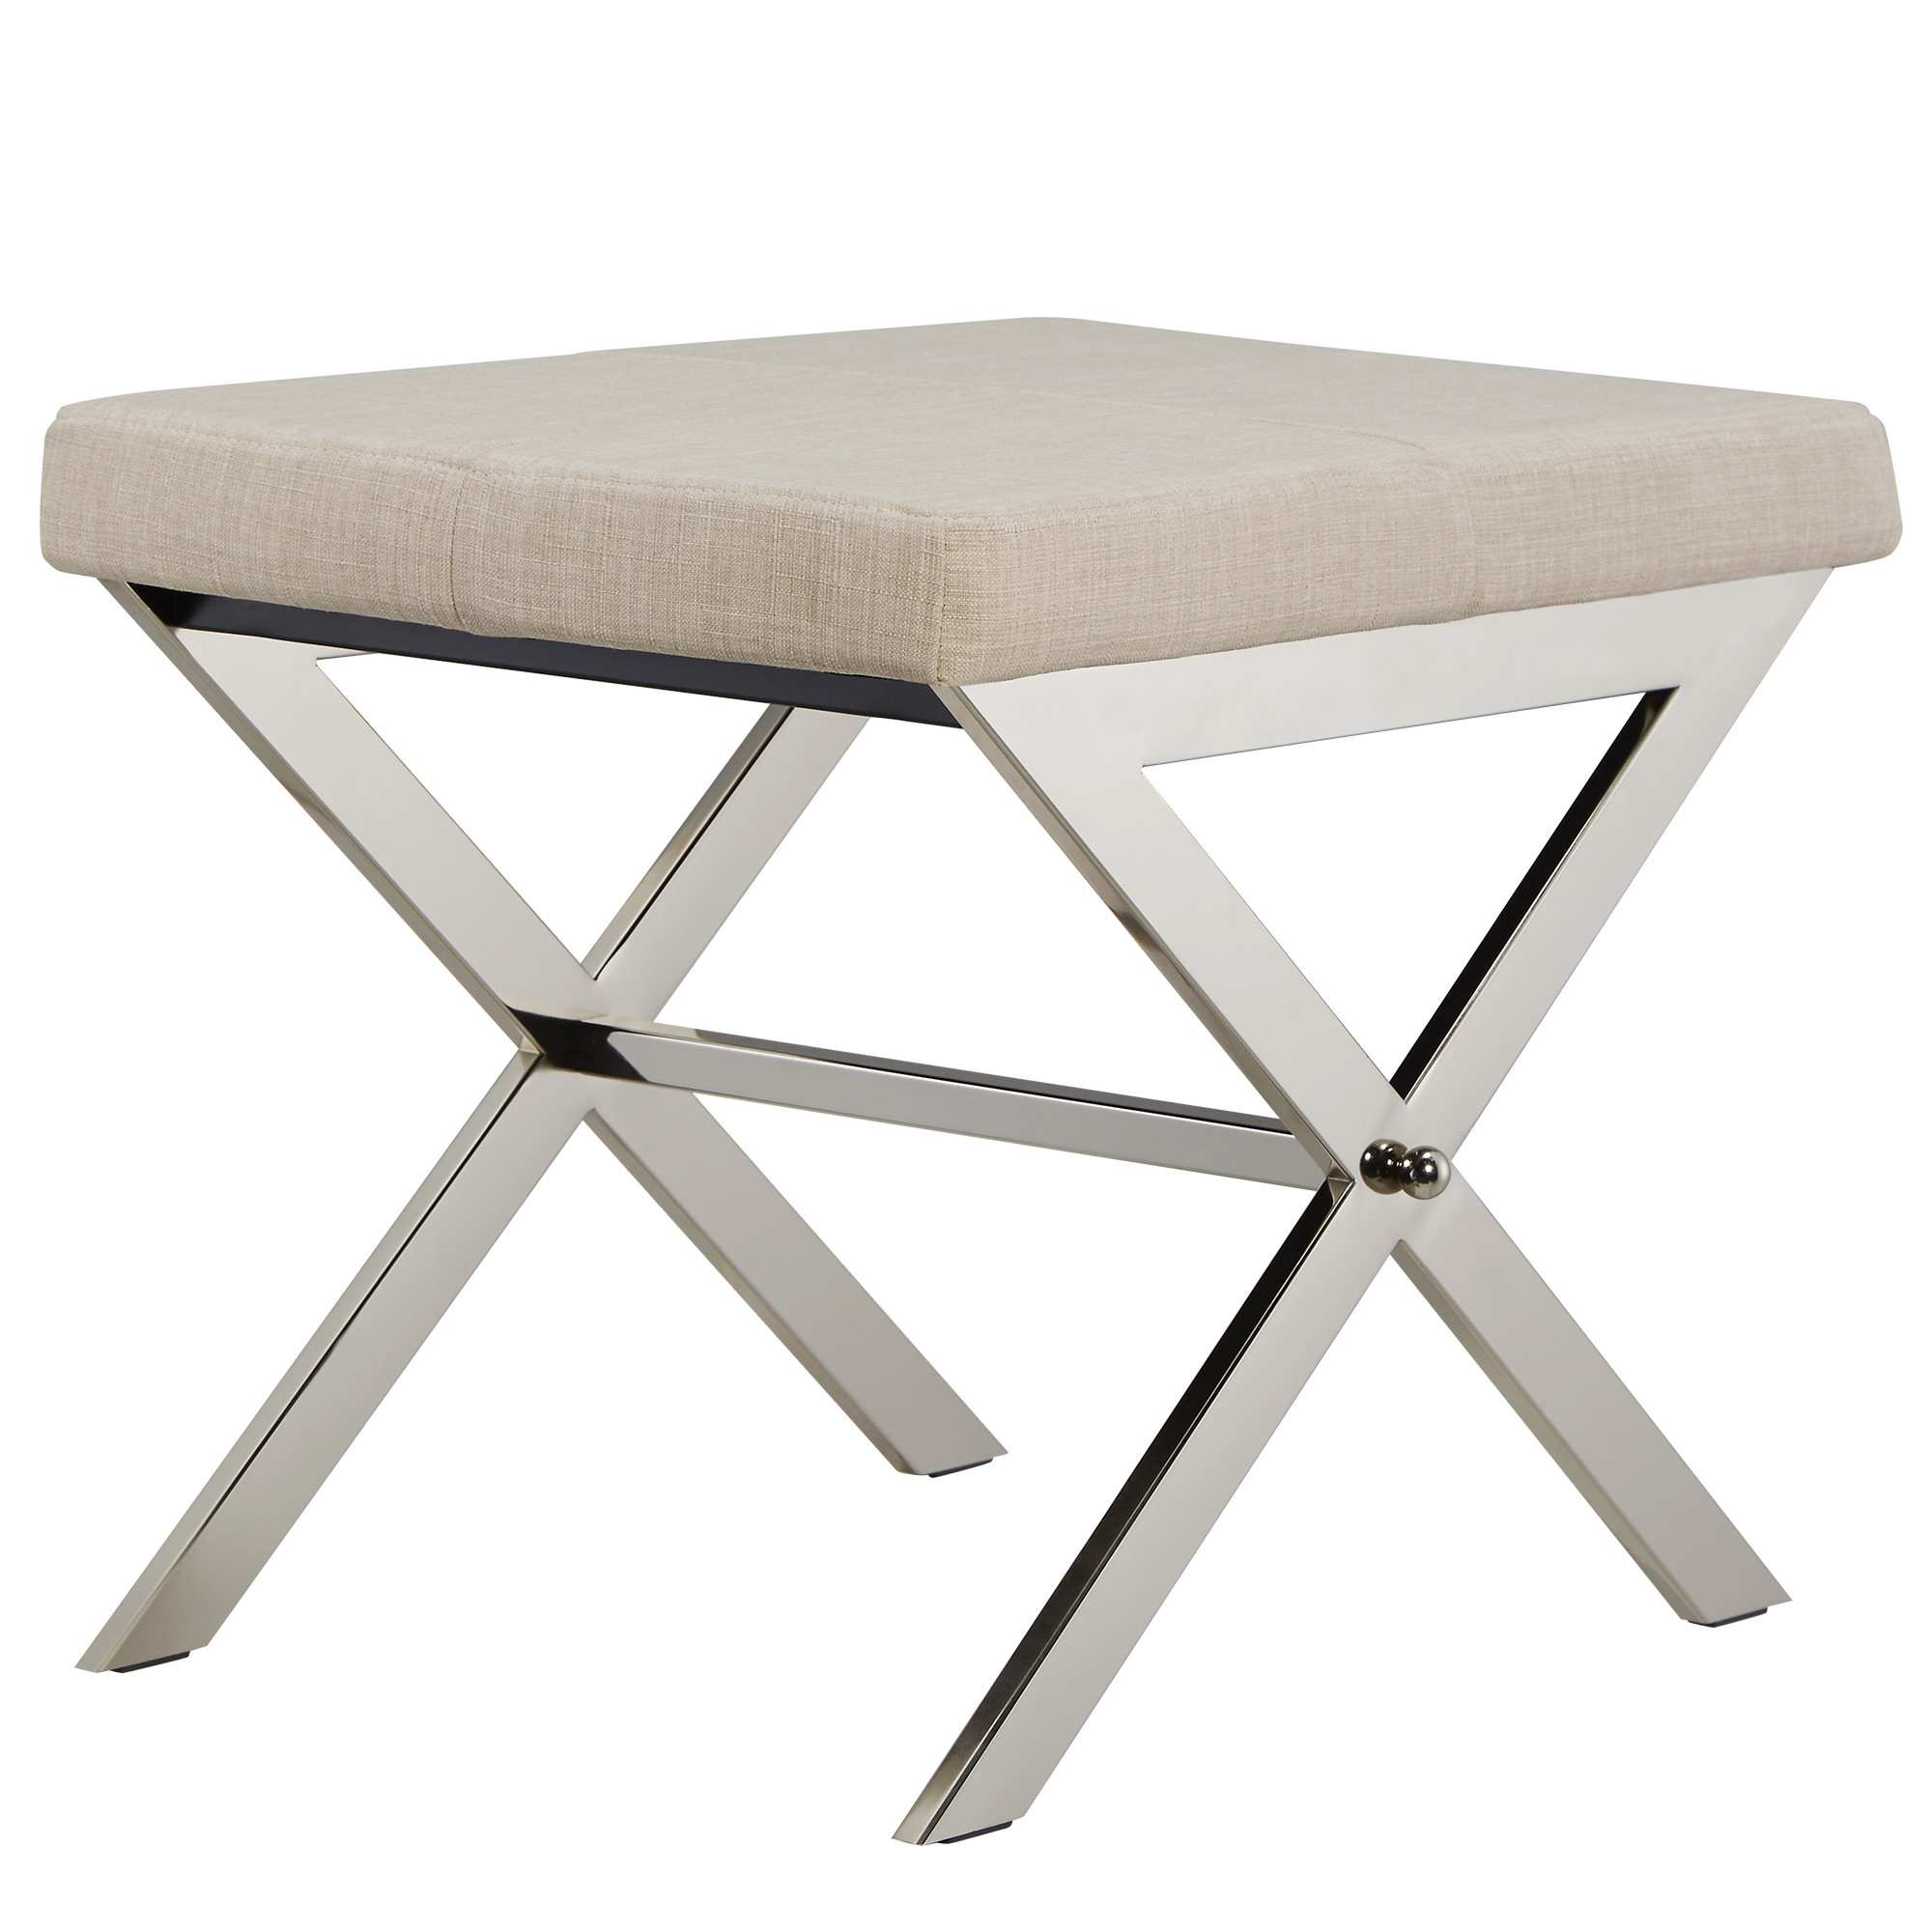 Elegant vanity stools for home furniture with vanity stool ikea